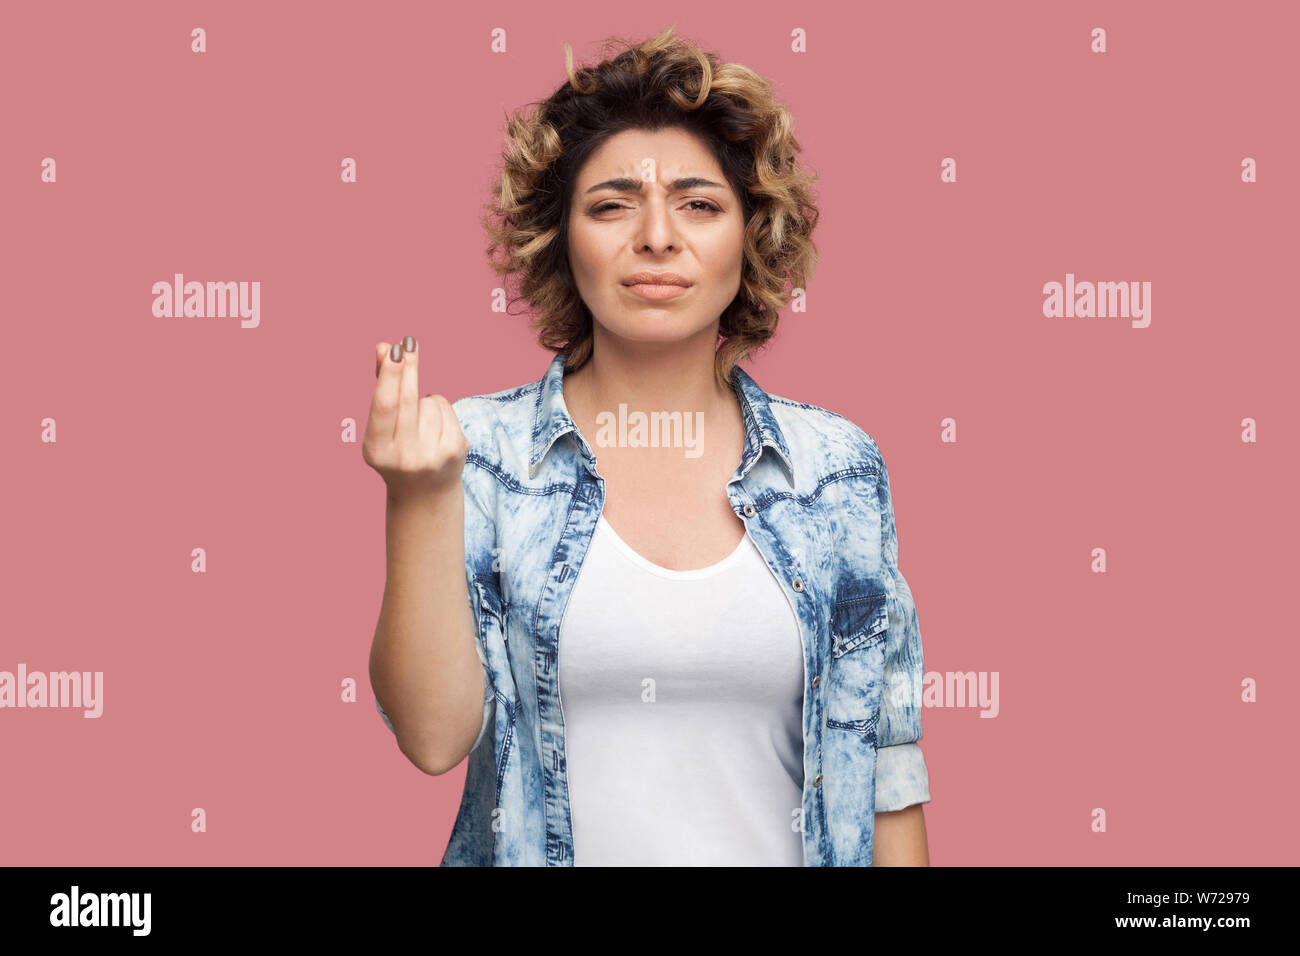 Portrait of serious young woman with curly hairstyle in casual blue shirt standing with money or italian gesture and looking at camera. indoor studio Stock Photo